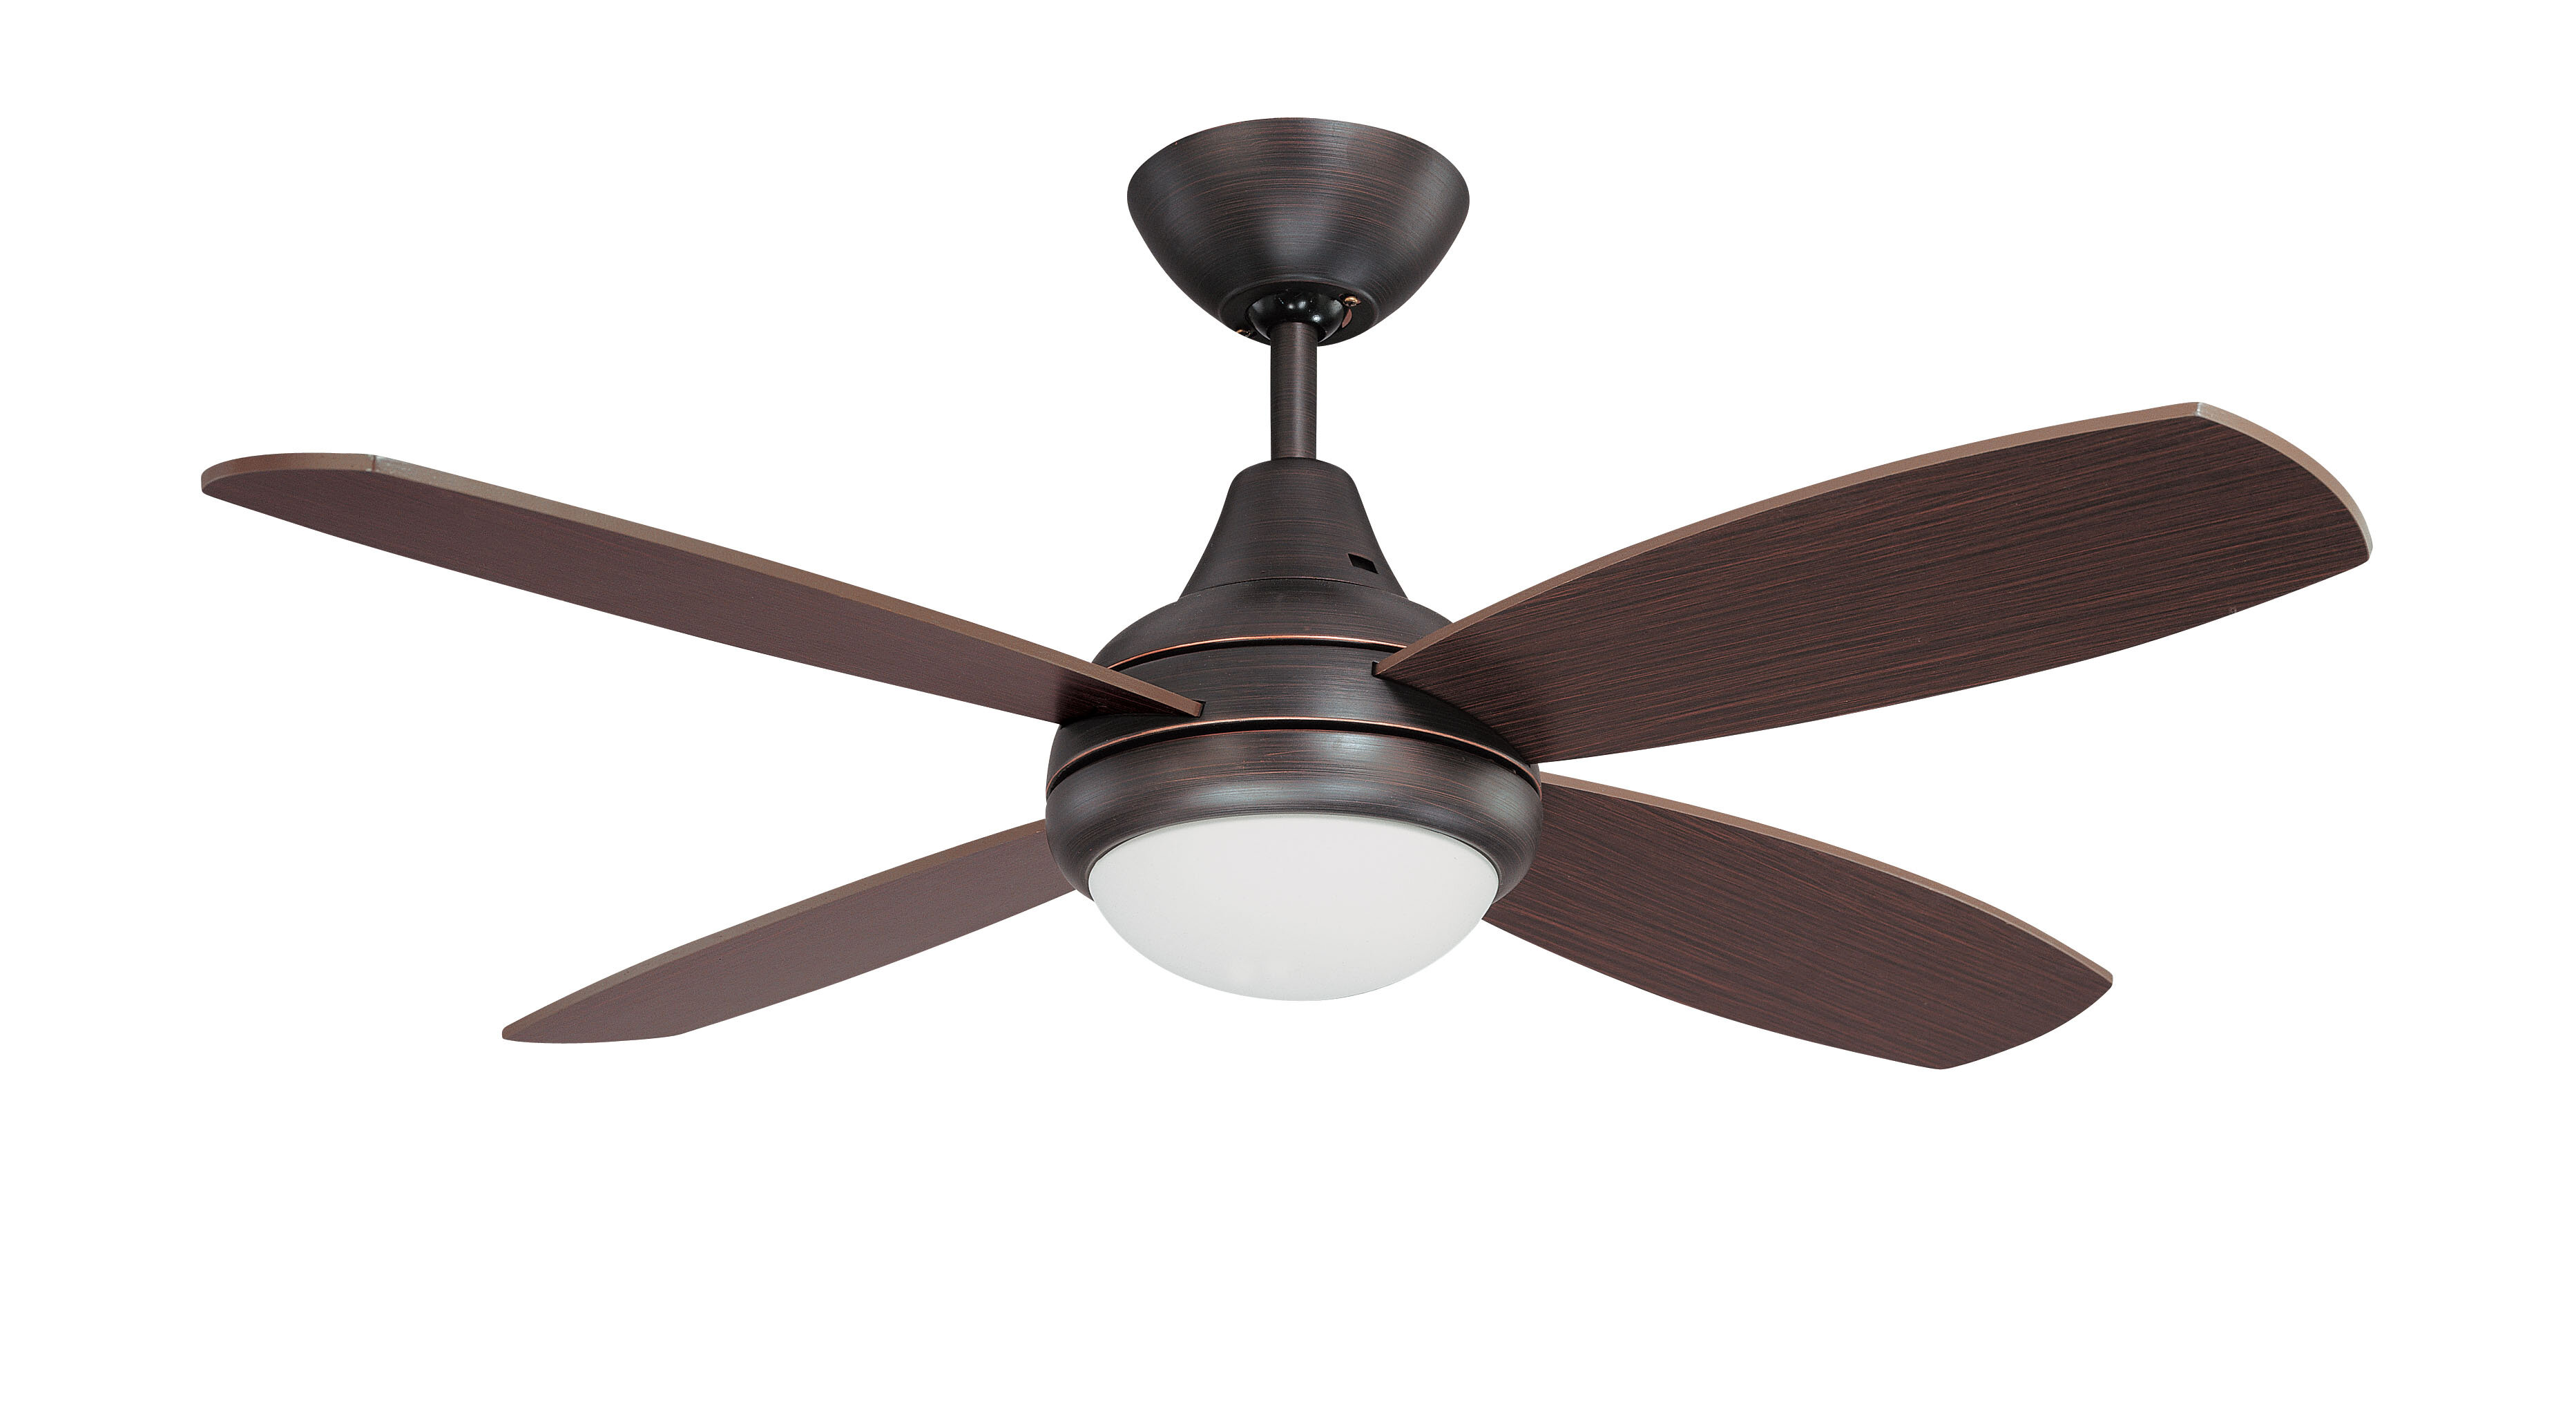 Williston Forge 42 Lilla 4 Blade Ceiling Fan With Remote Reviews Wayfair